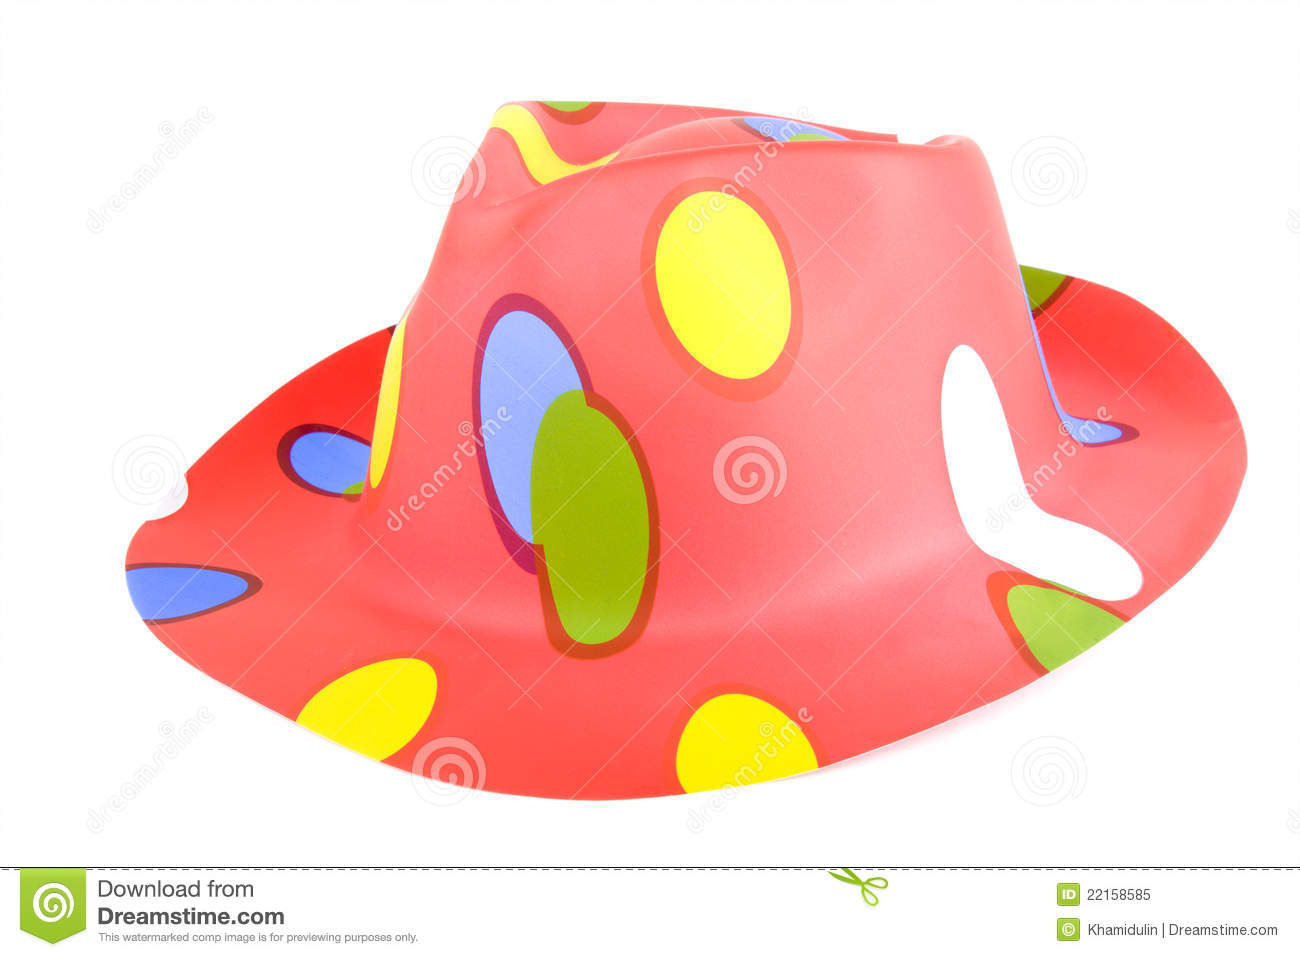 Fancy Cowboy Hat Royalty Free Stock Photo - Image: 22158585 banner library